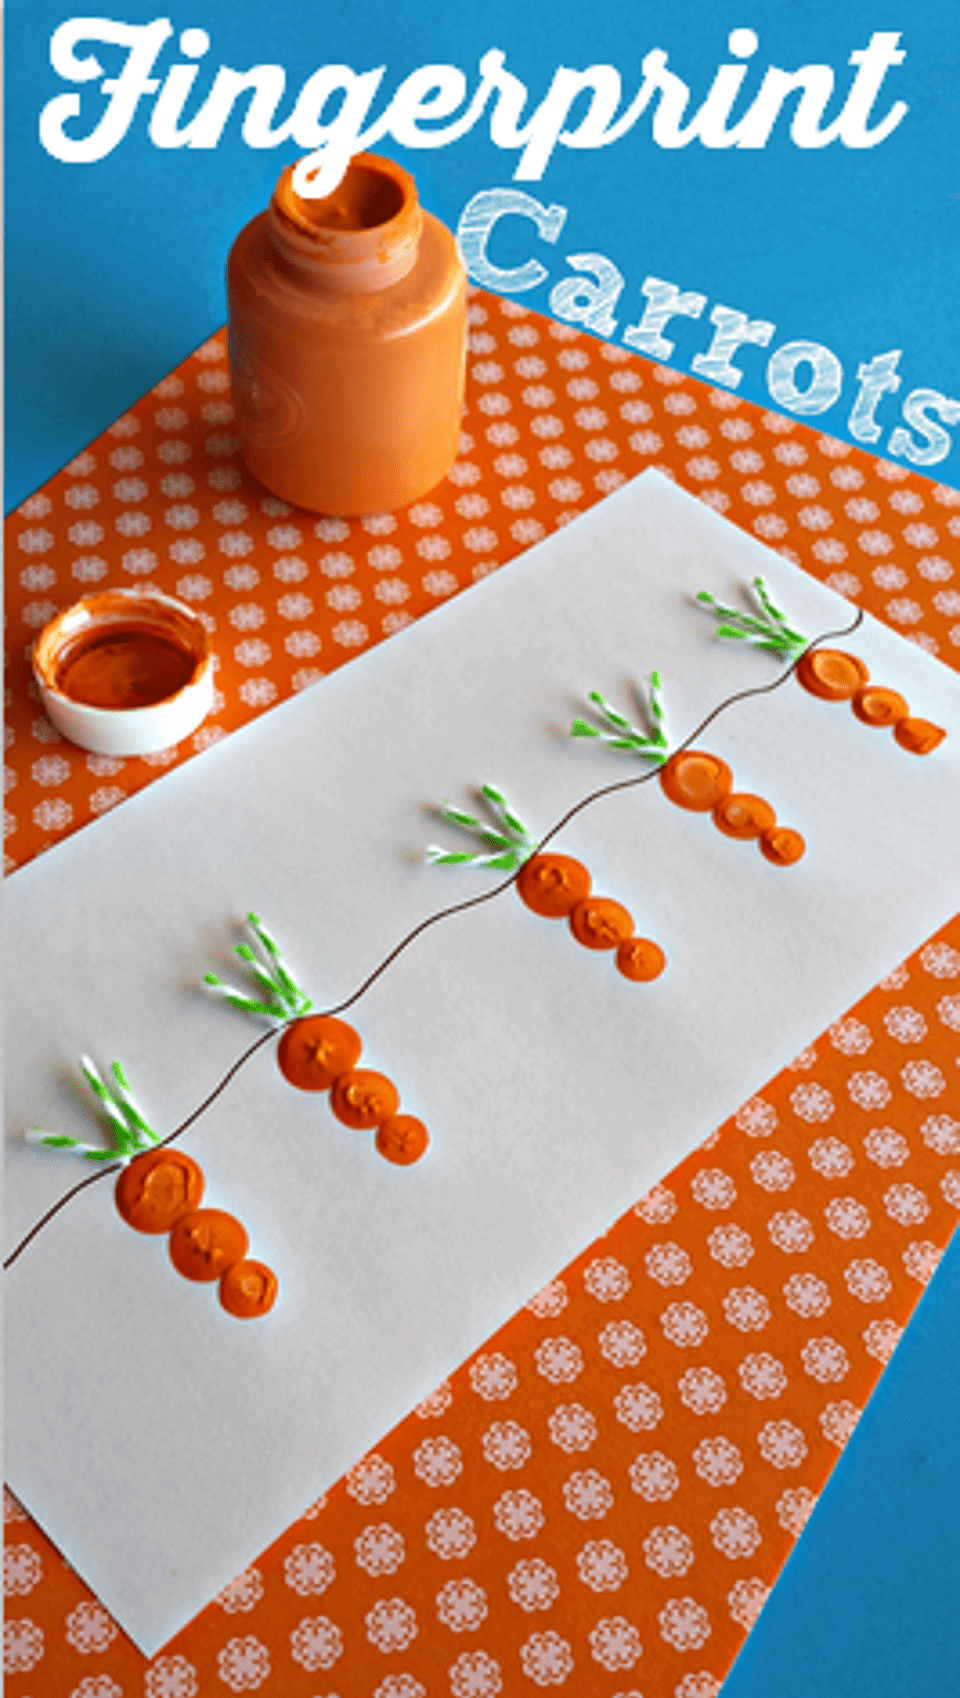 DIY Crafts for Kids with Fingerprints